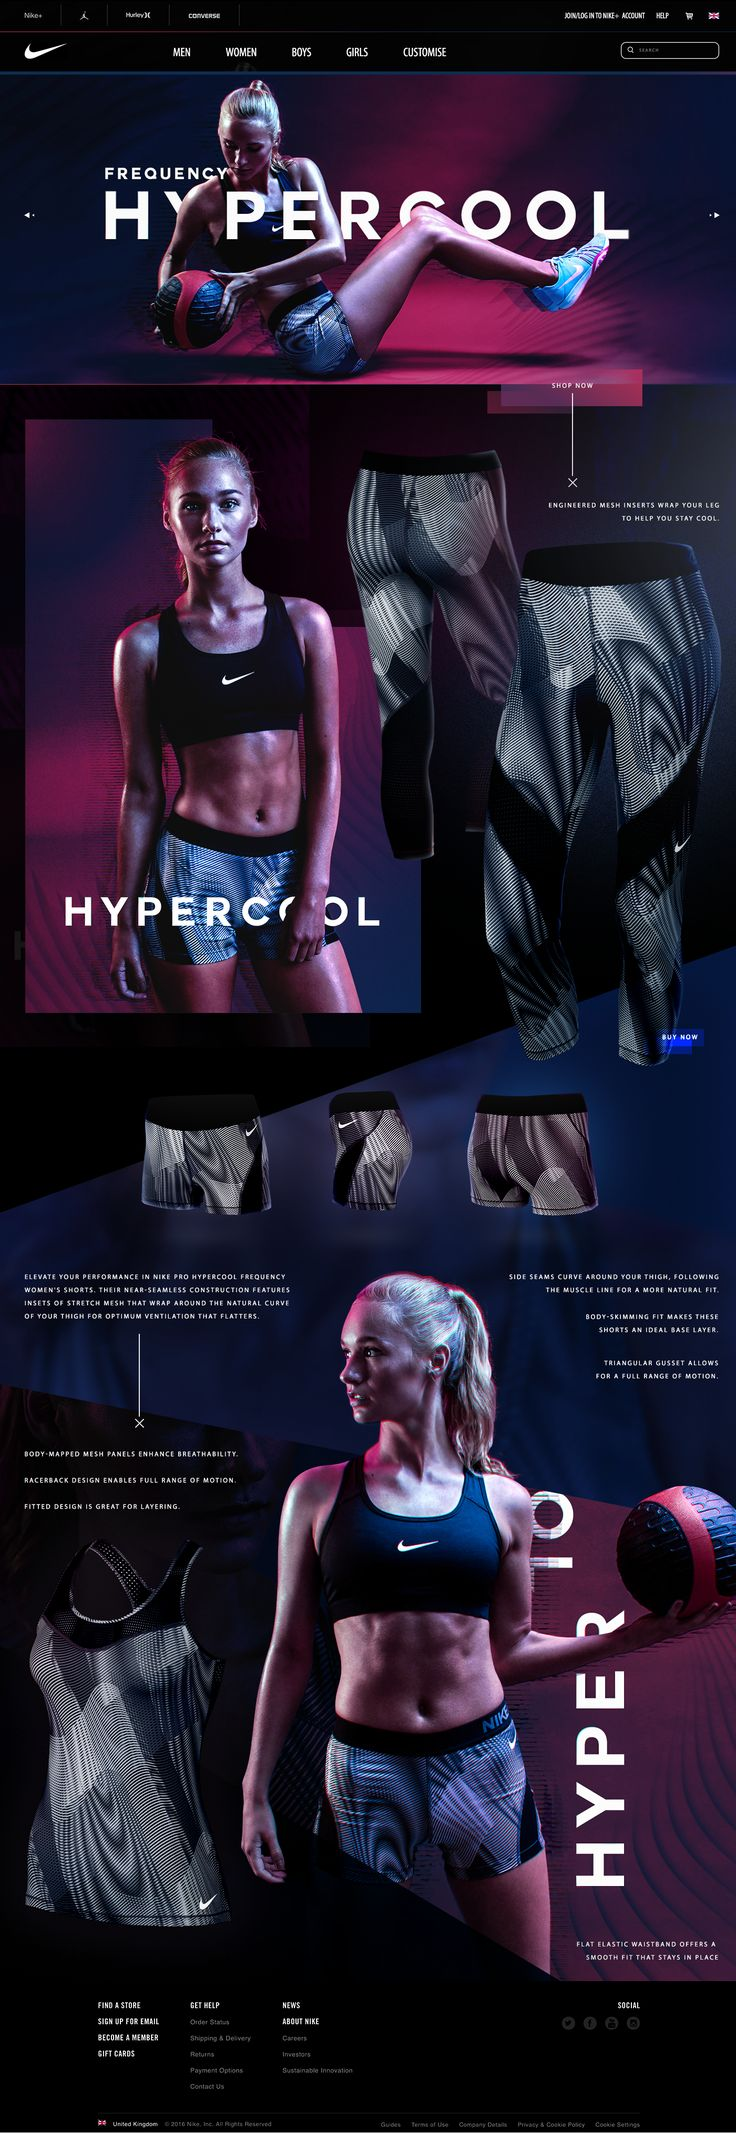 Nike 'HYPERCOOL Frequency' Campaign - Summer 2016 on Behance